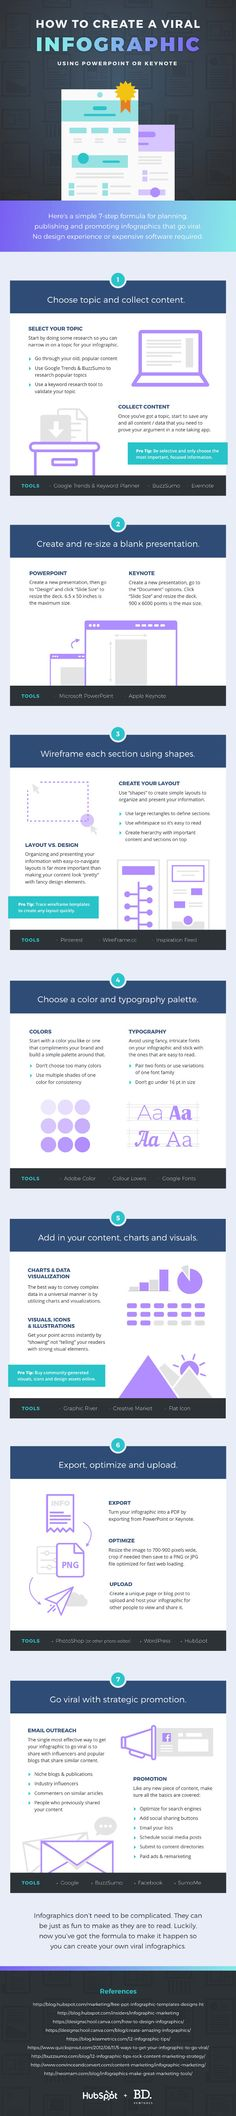 Graphic Design - How to Create Infographics Using PowerPoint or Keynote [Infographic] : MarketingProfs Article